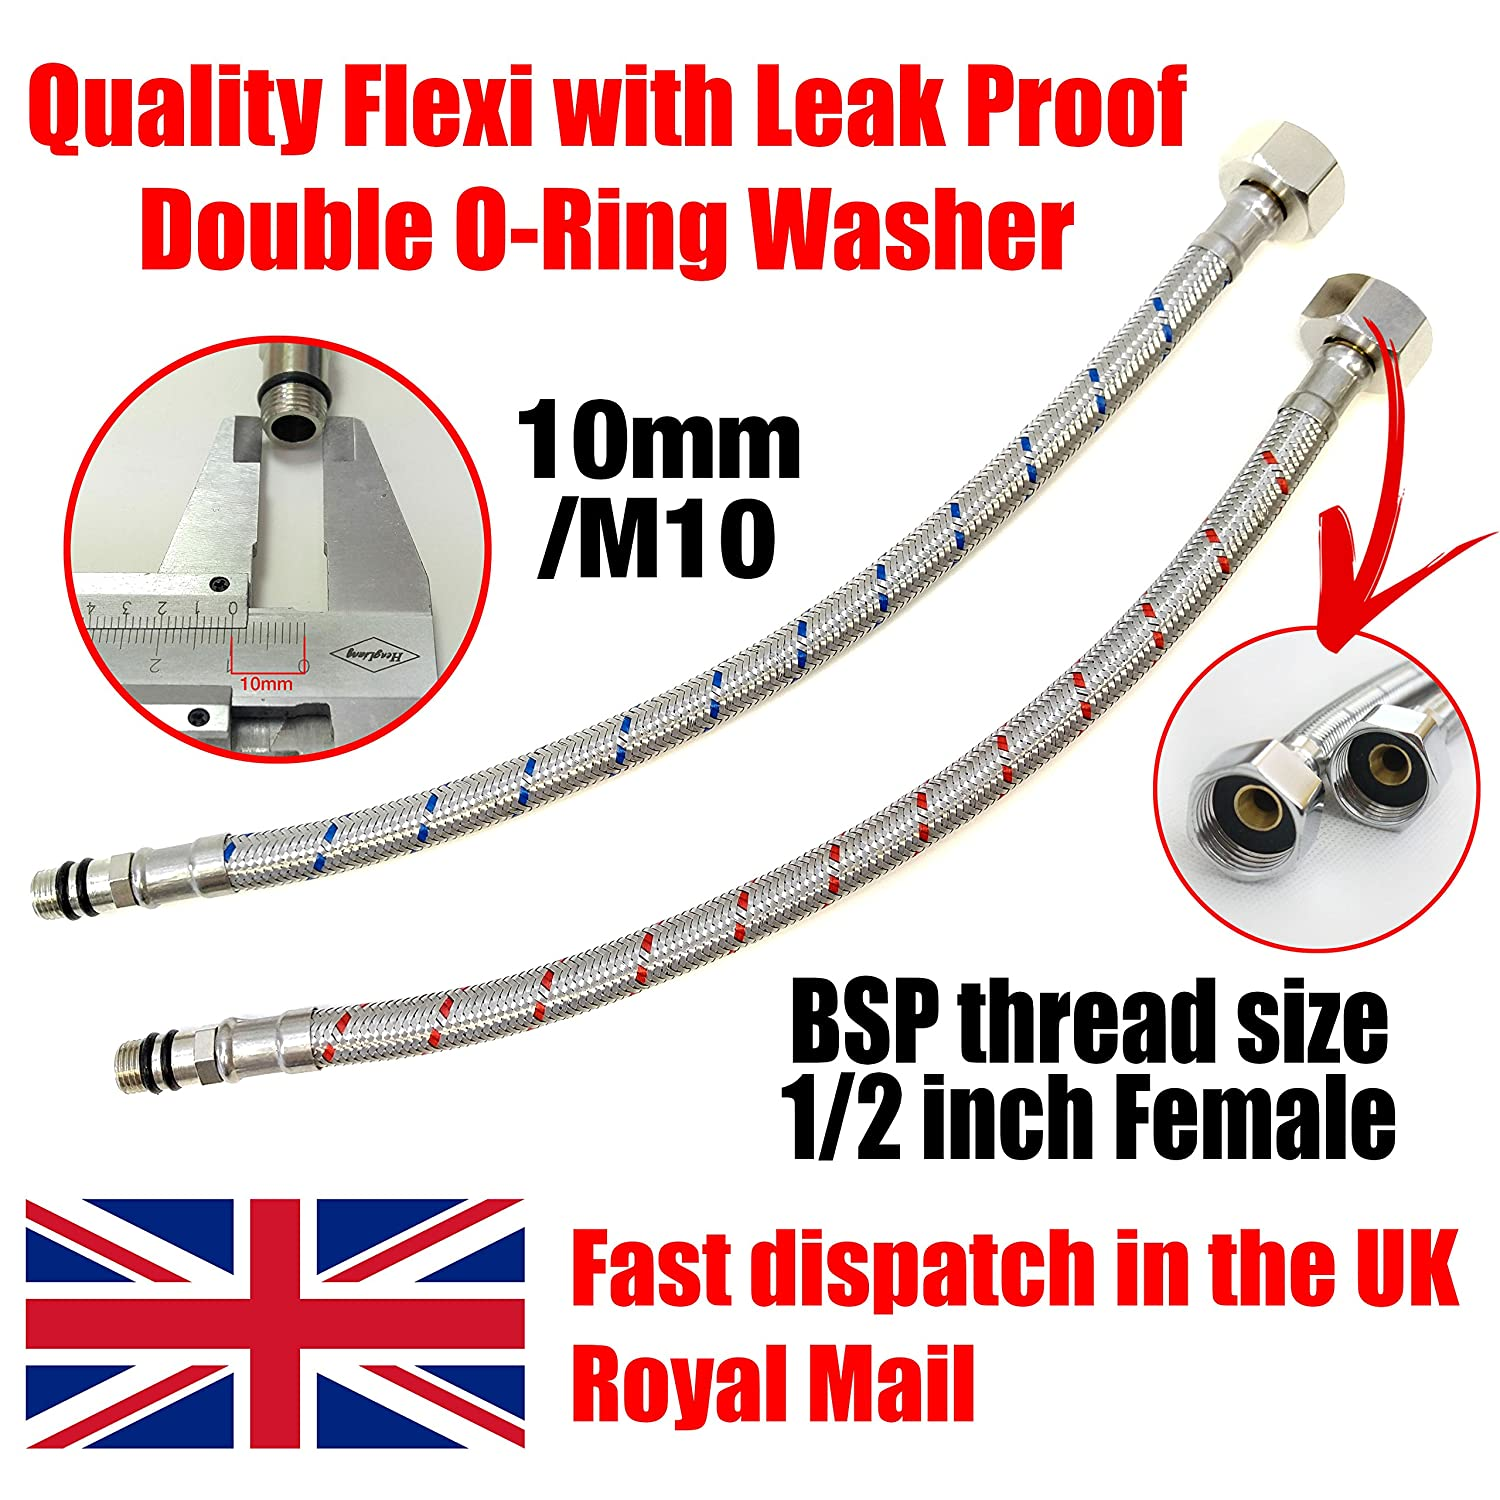 Xcel Home 2 x M10 x1/2 BSP (400mm) Kitchen/Basin Monobloc Mixer Tap Connectors Flexi Pipes Tails Evergreen Goods Ltd Others